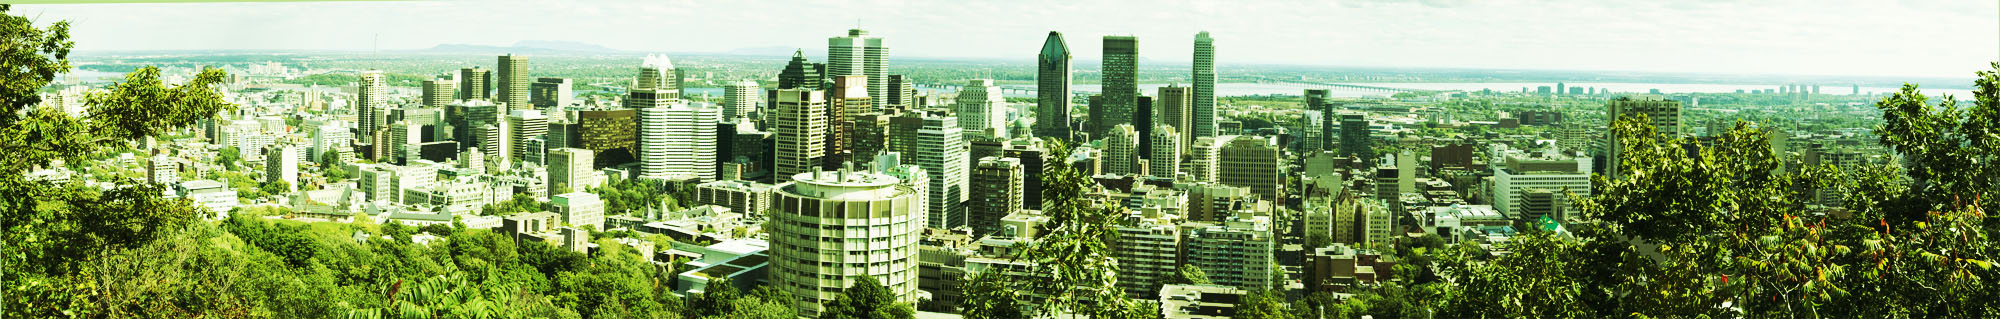 Montreal Cityscape